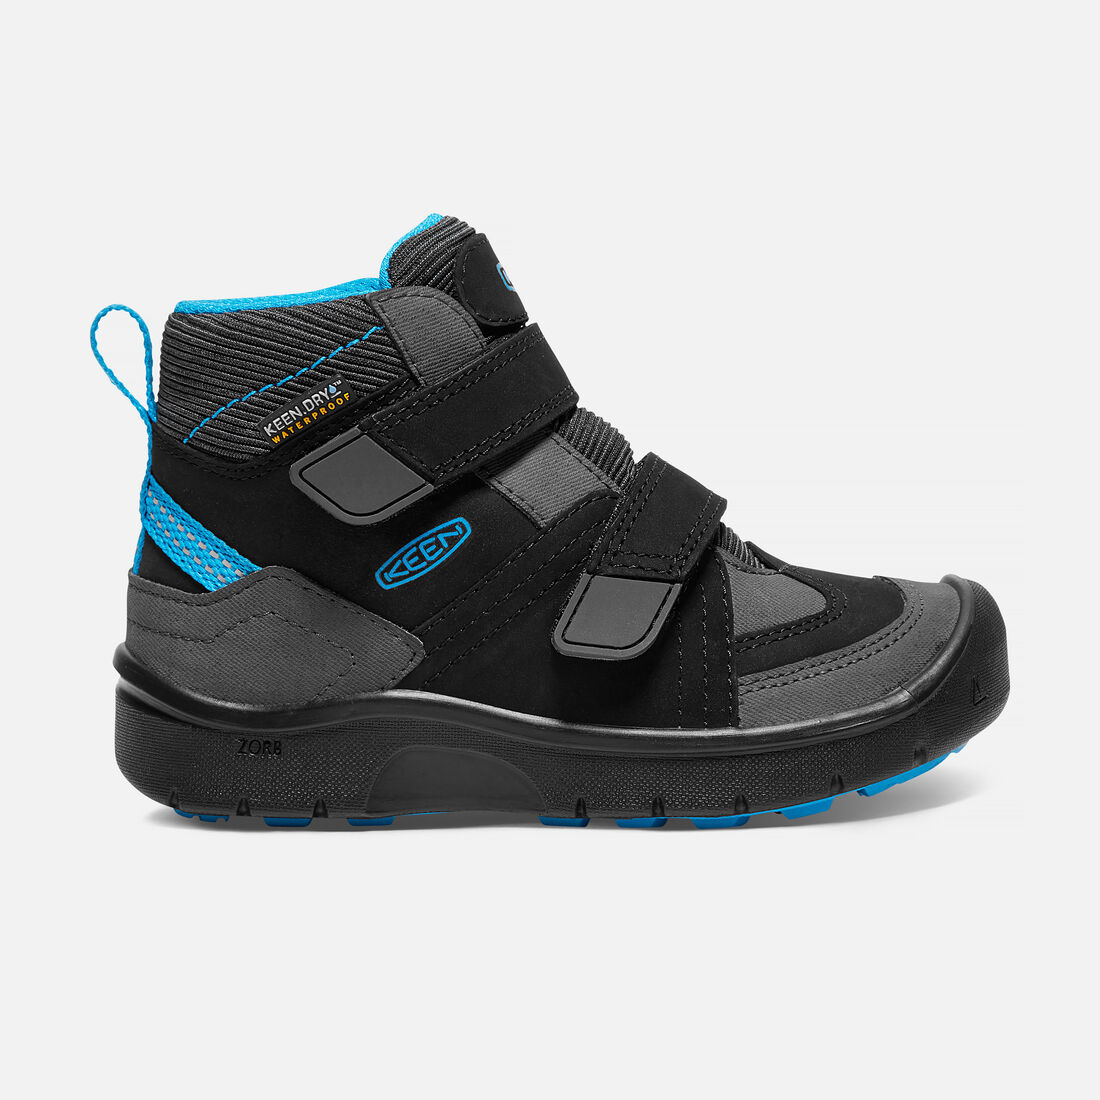 Little Kids' HIKEPORT MID STRAP Waterproof in Black/Blue Jewel - large view.